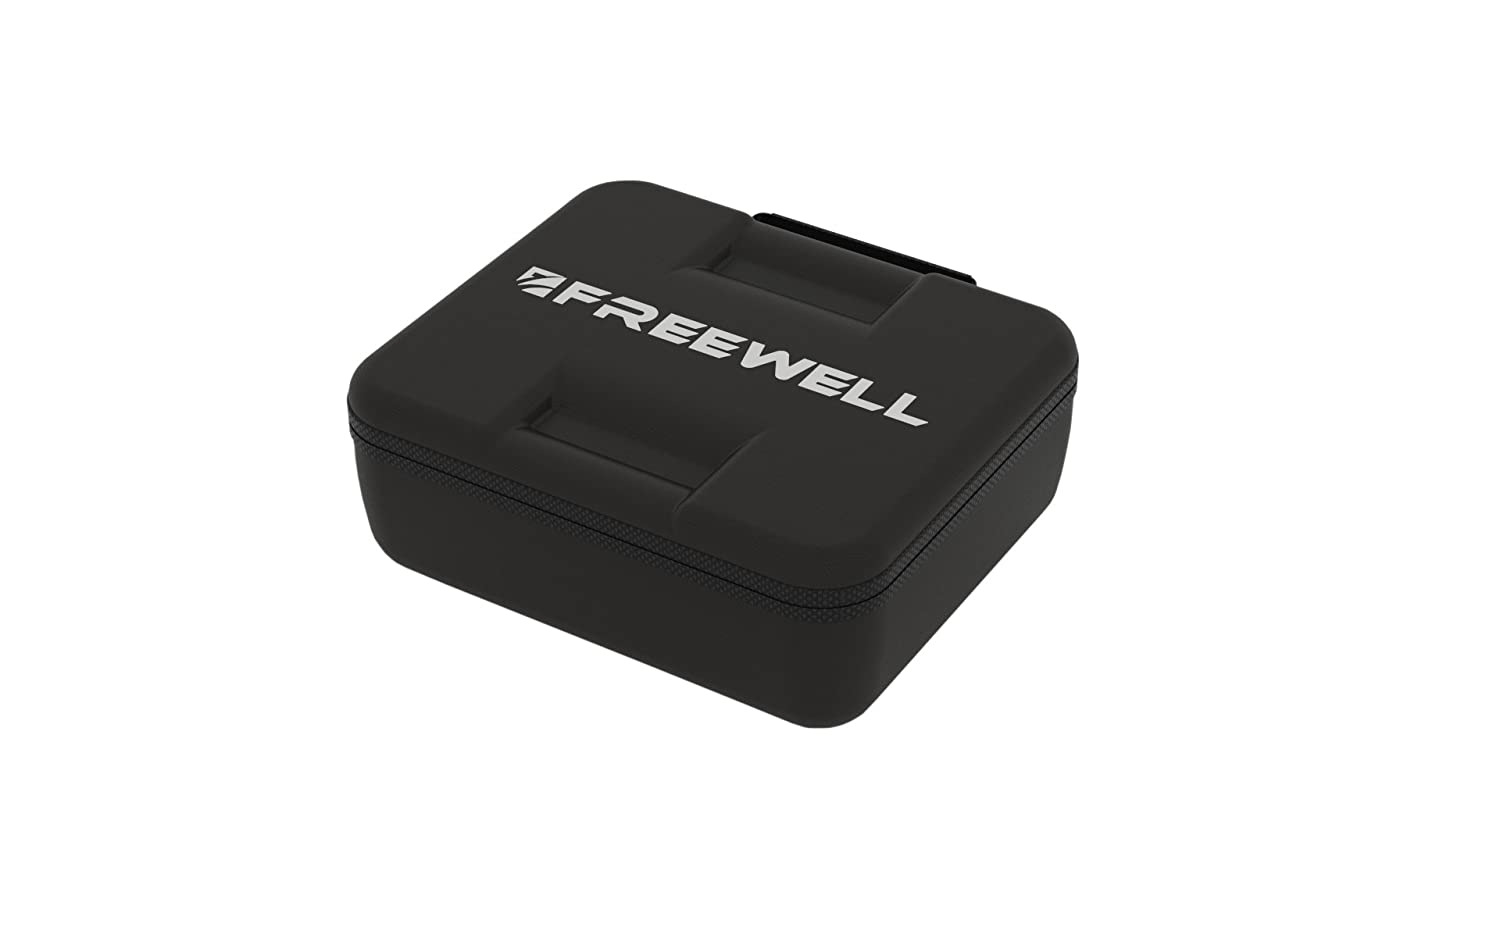 Freewell Compact Carry Case for DJI CrystalSky 7.85inch Monitor FW-CSLG